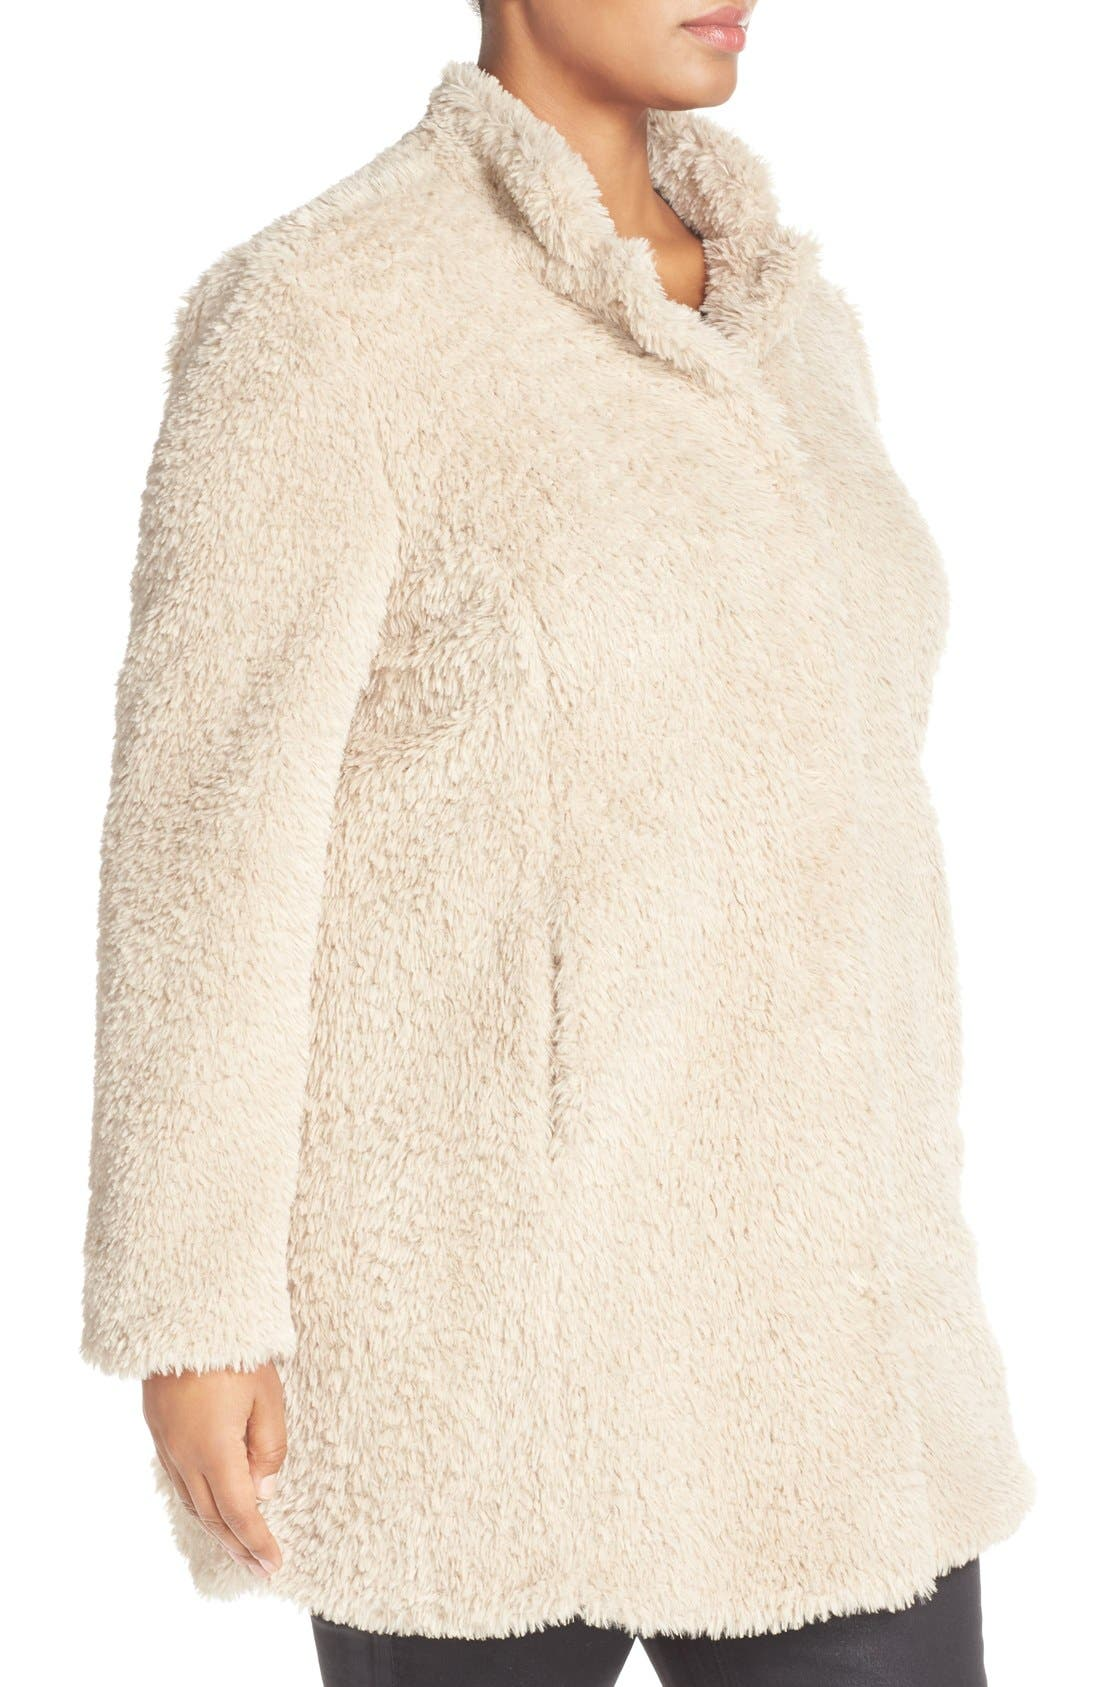 Alternate Image 3  - Kenneth Cole New York 'Original Teddy' Faux Fur Coat (Plus Size)